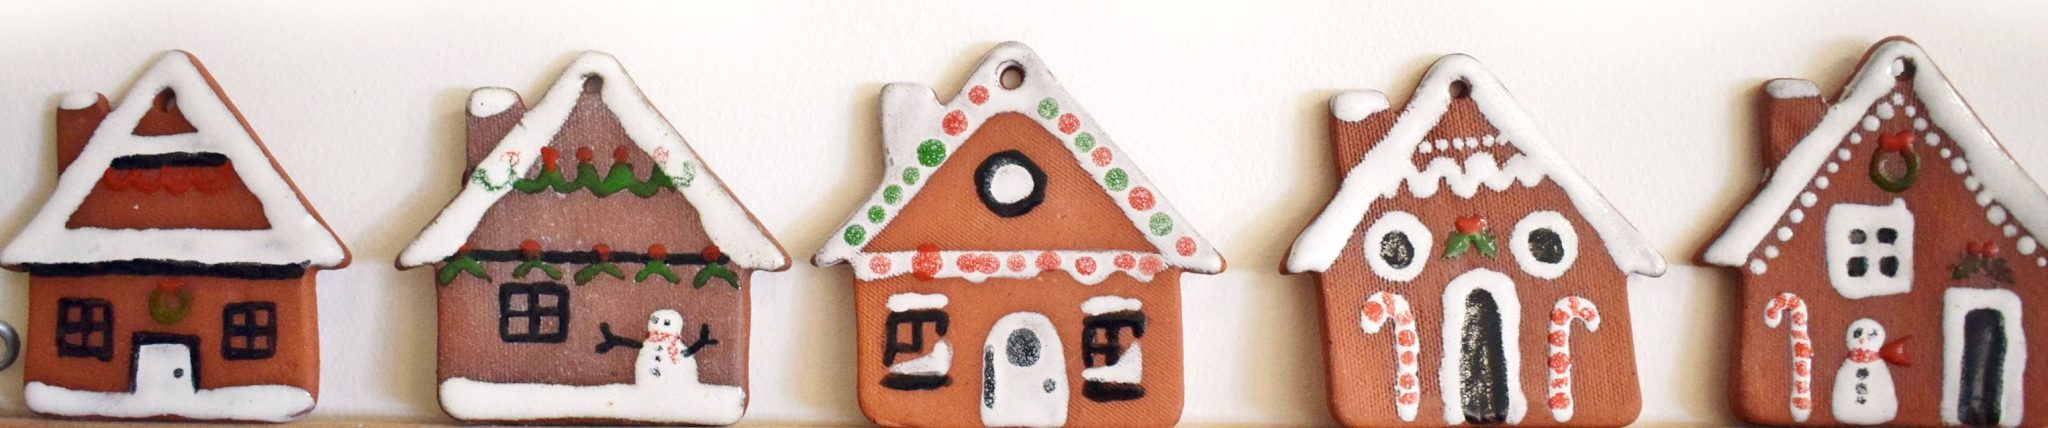 gingerbread house hanging decorations